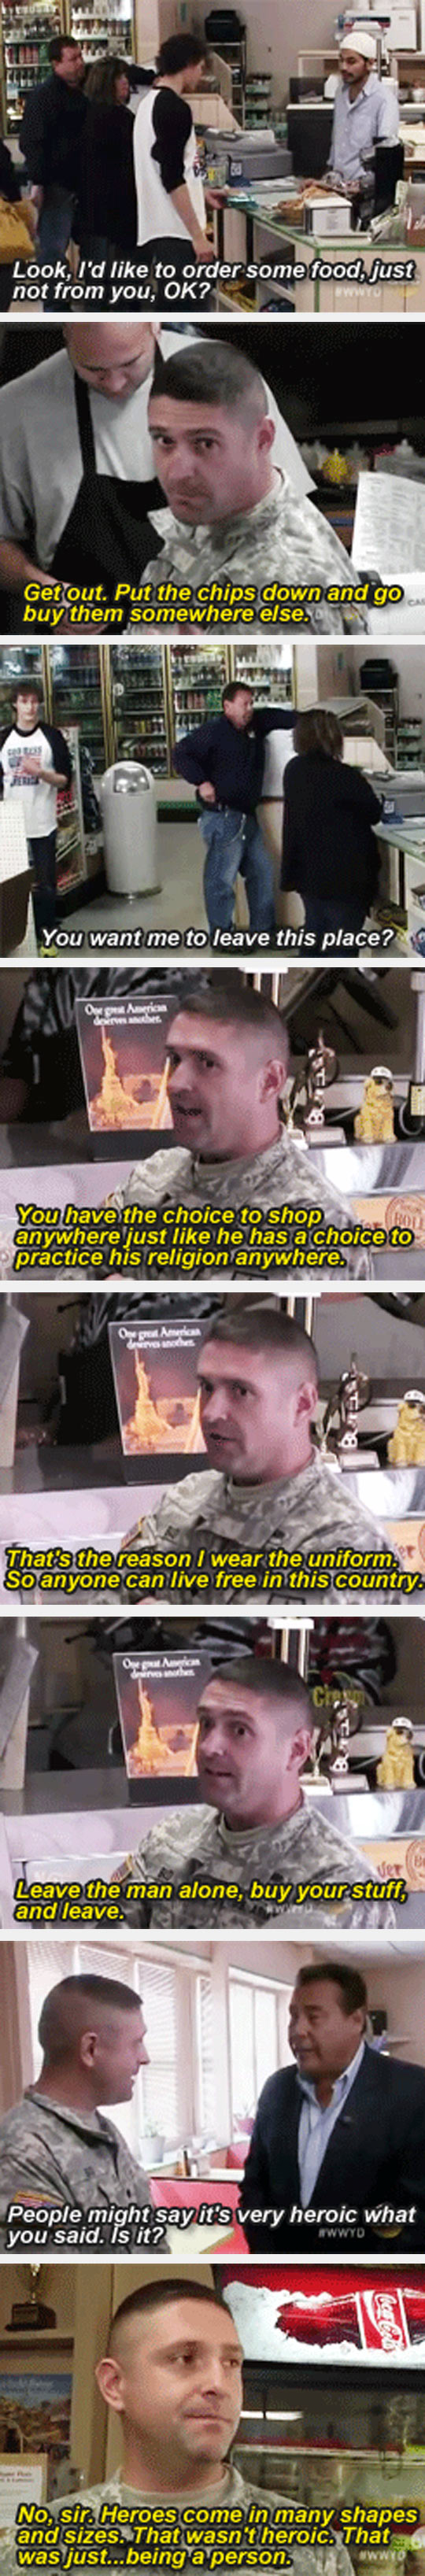 cool-soldier-defend-Muslim-store